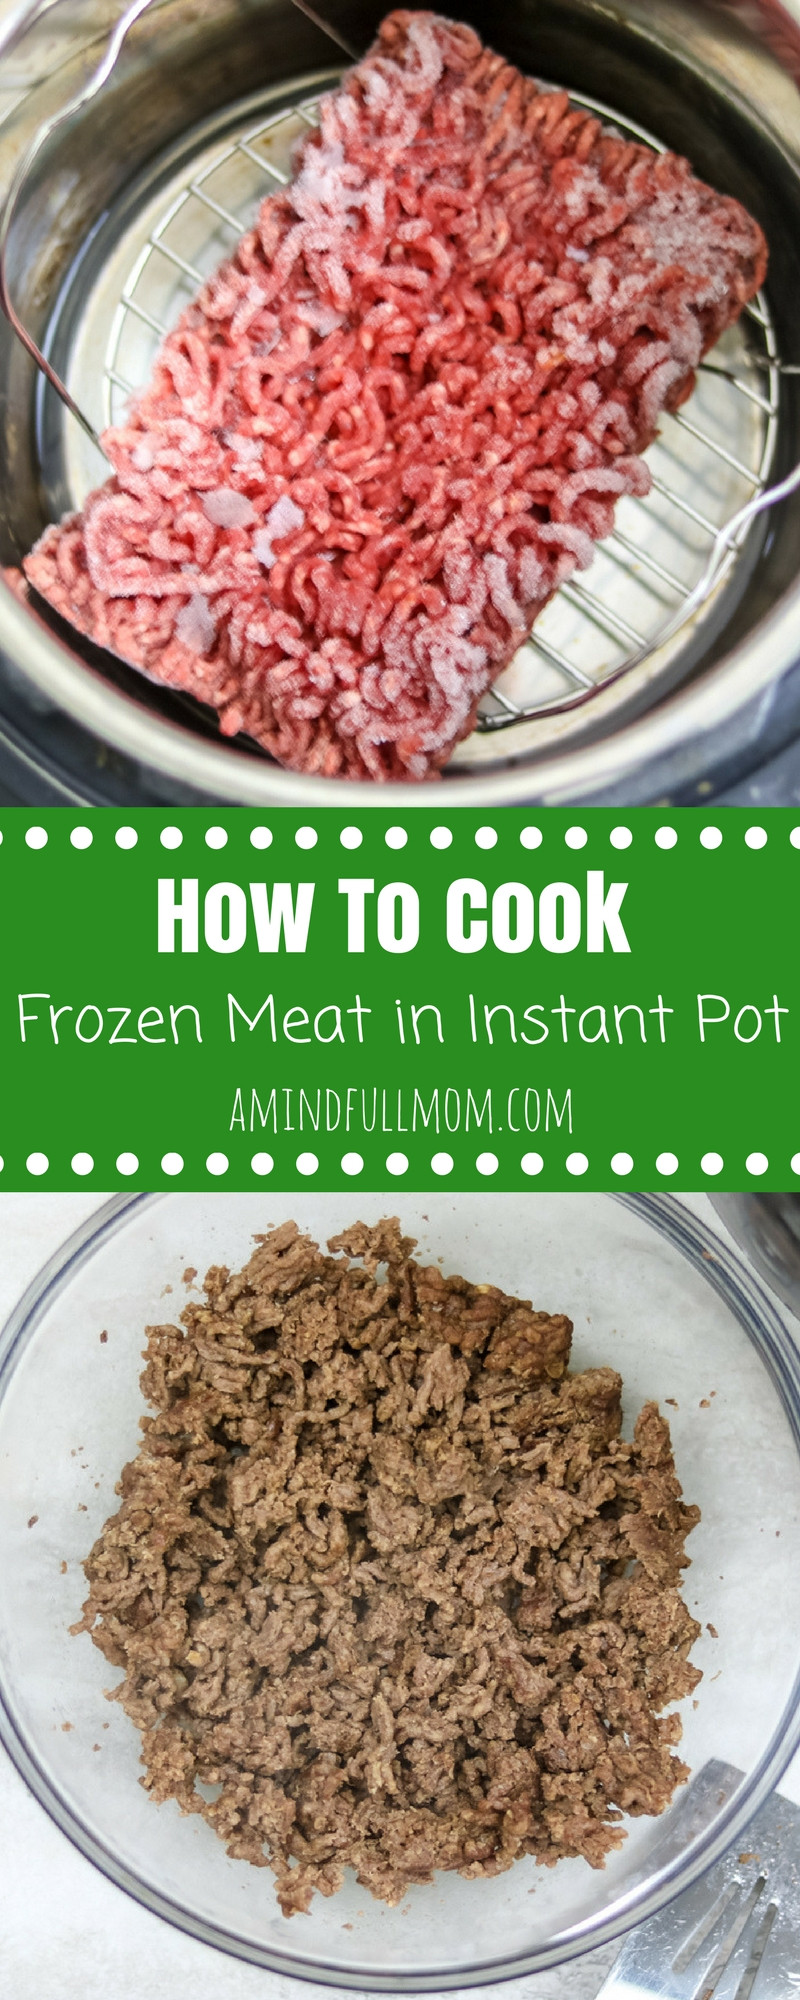 How To Make Ground Beef  How to Cook Ground Beef in Instant Pot